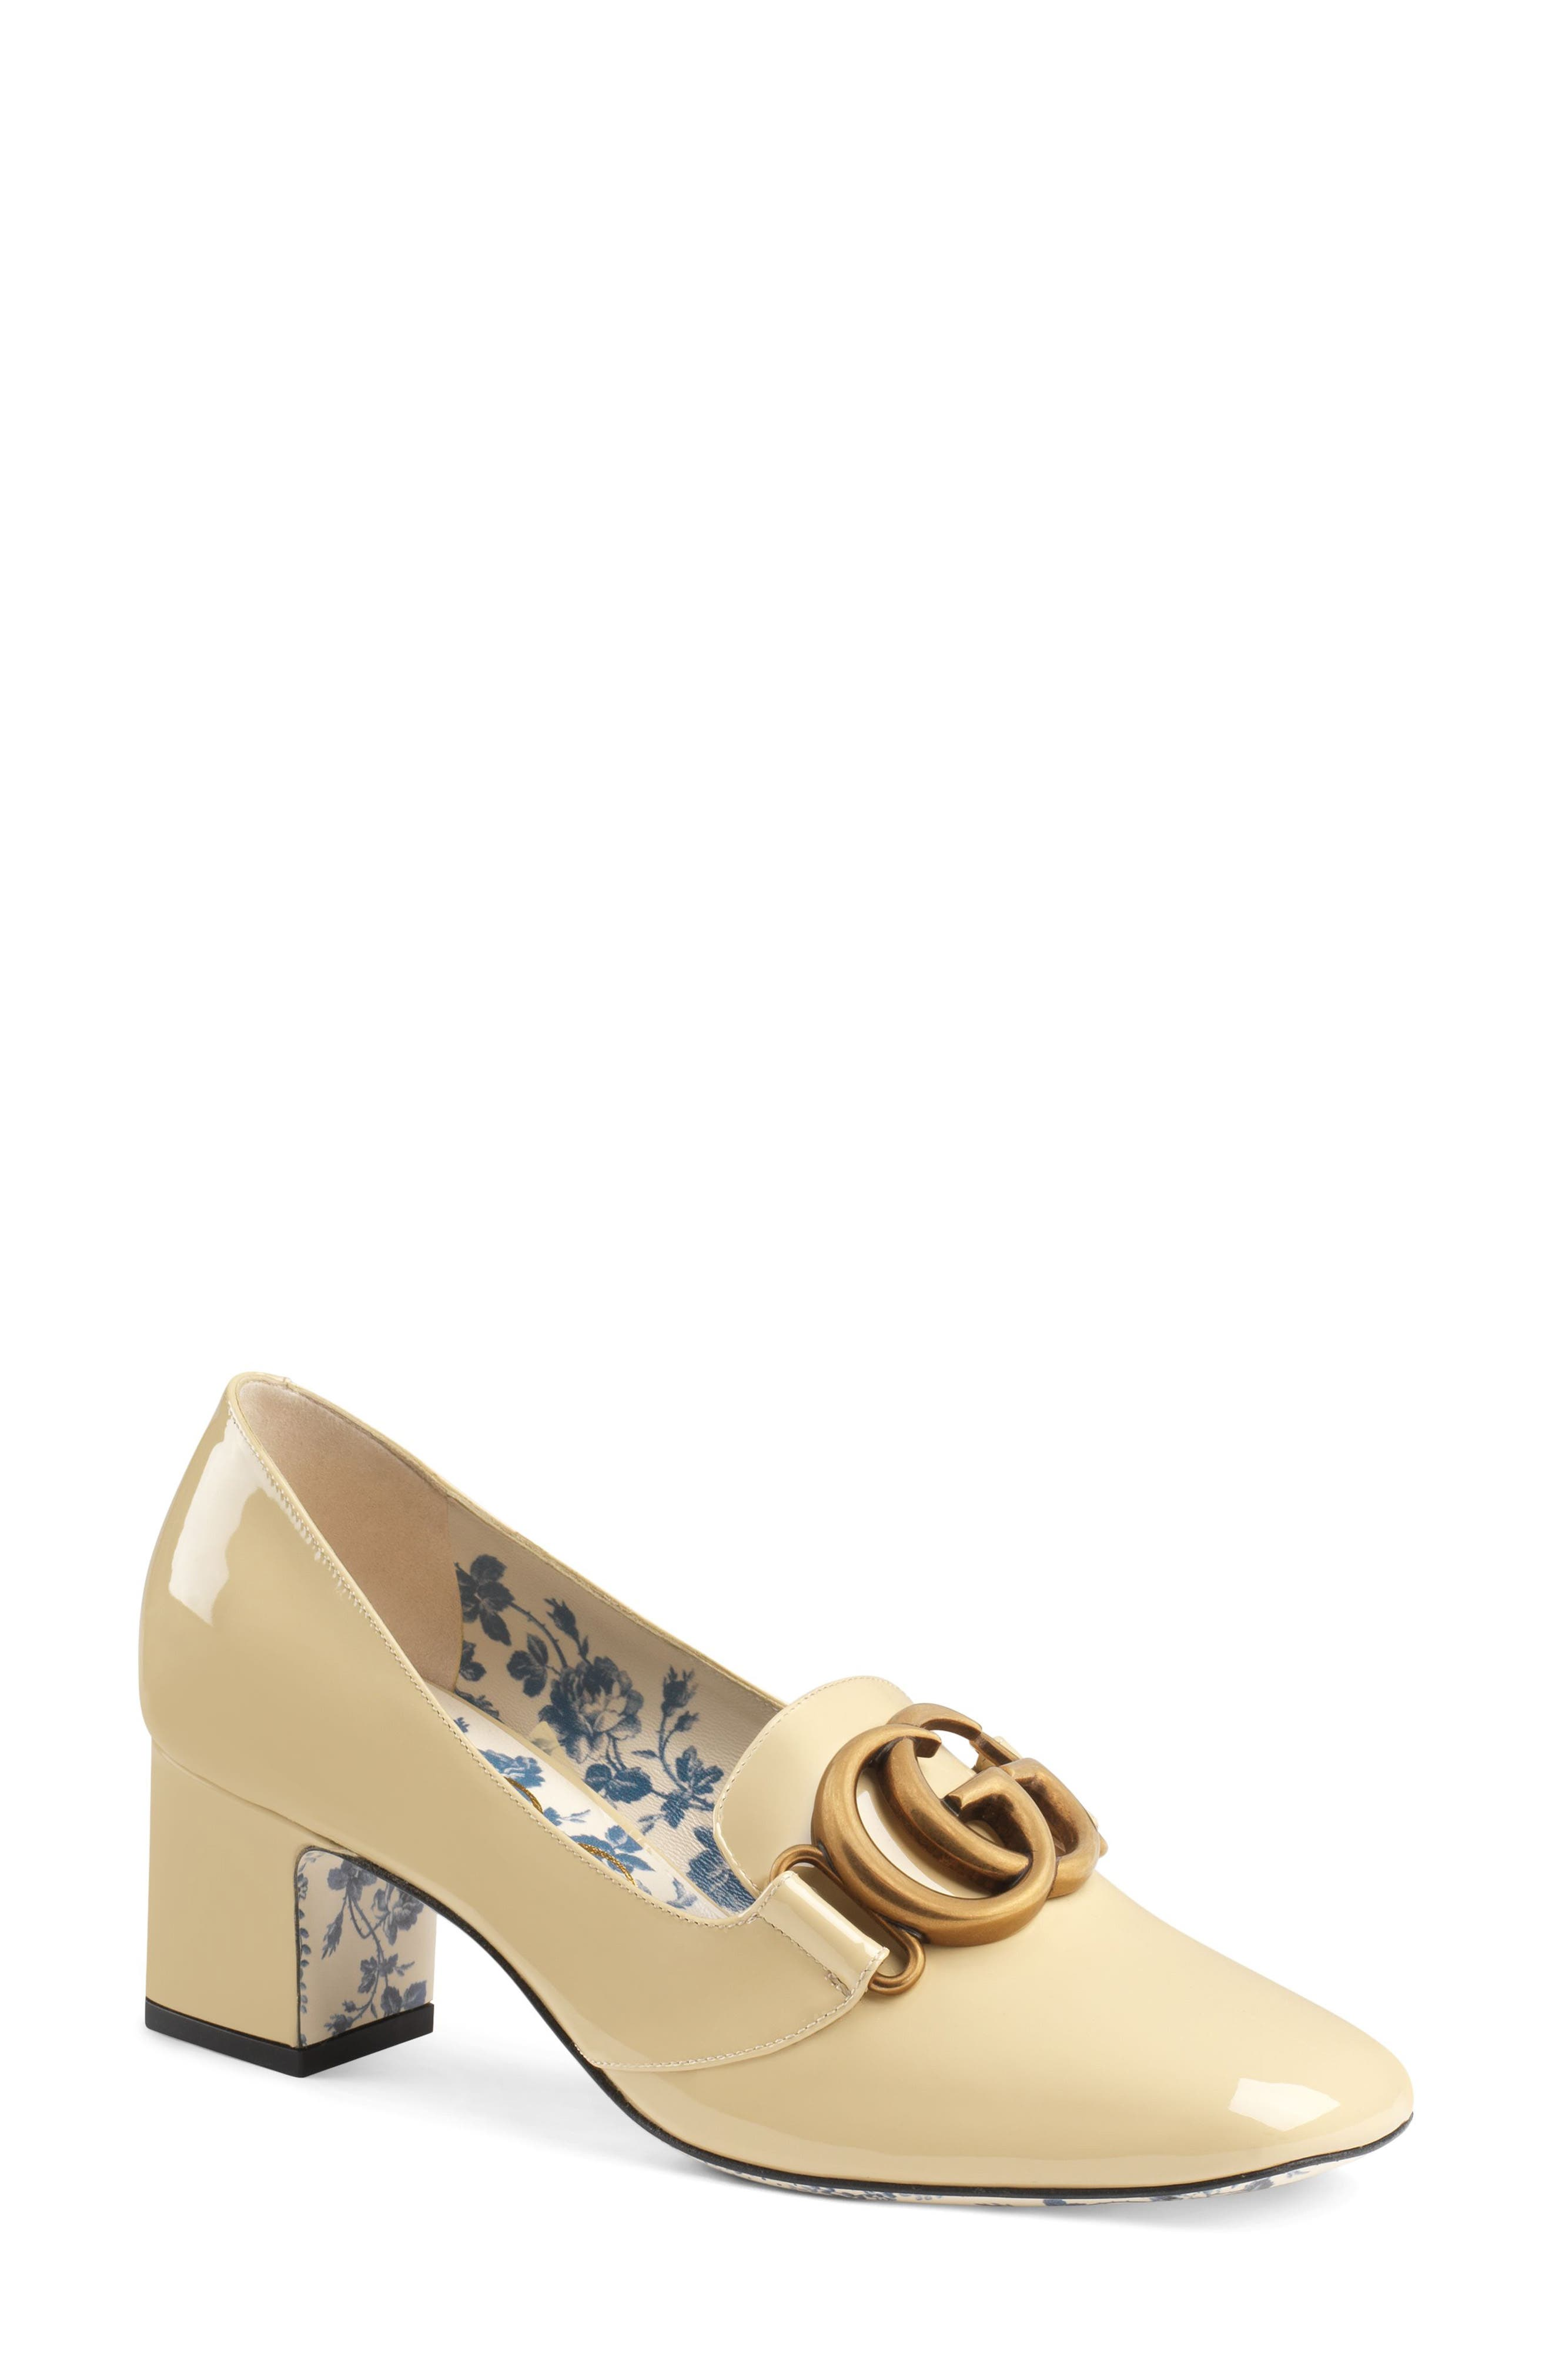 Gucci Loafer Pump - Ivory